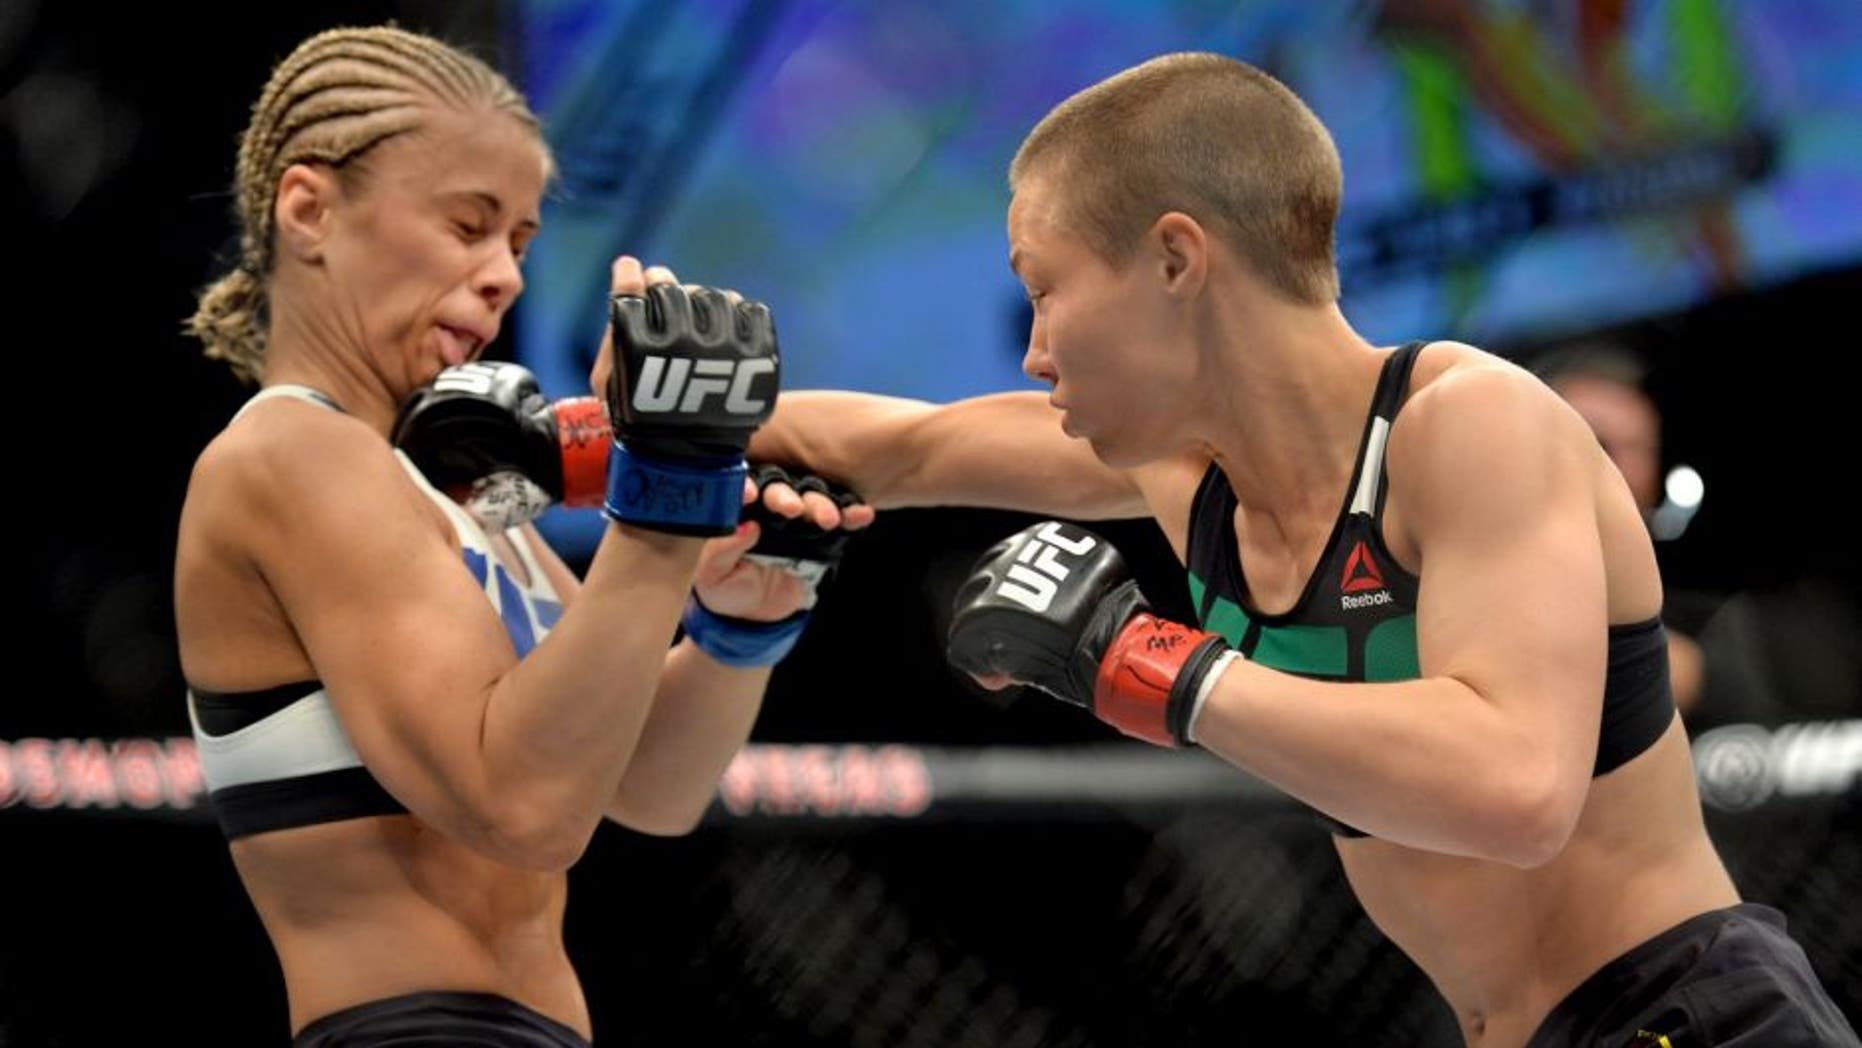 LAS VEGAS, NEVADA - DECEMBER 10: (R) Rose Namajunas punches Paige VanZant in their women's strawweight bout during the UFC Fight Night event at The Chelsea at the Cosmopolitan of Las Vegas on December 10, 2015 in Las Vegas, Nevada. (Photo by Brandon Magnus/Zuffa LLC/Zuffa LLC via Getty Images)